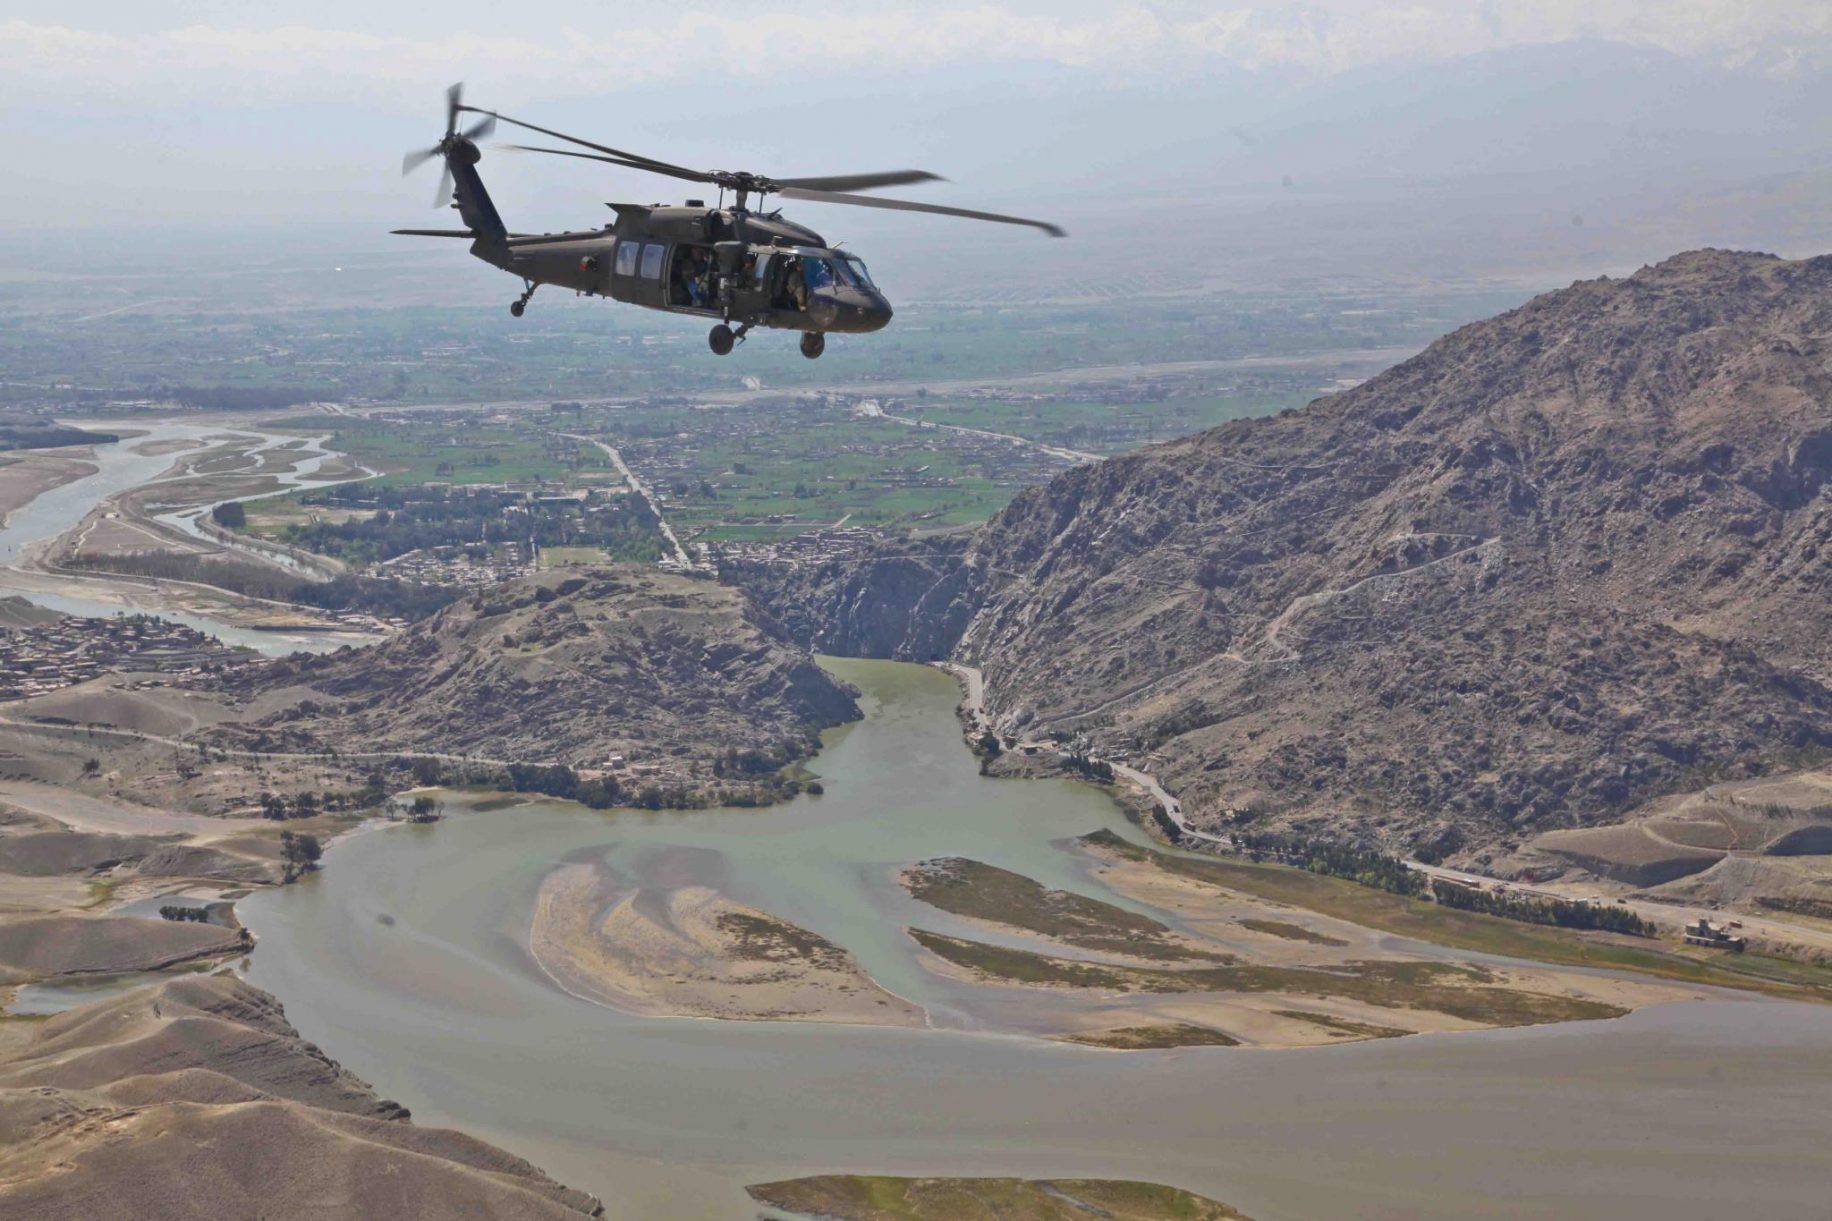 Reports: US troops ambushed, killed in Afghanistan; possible insider attack